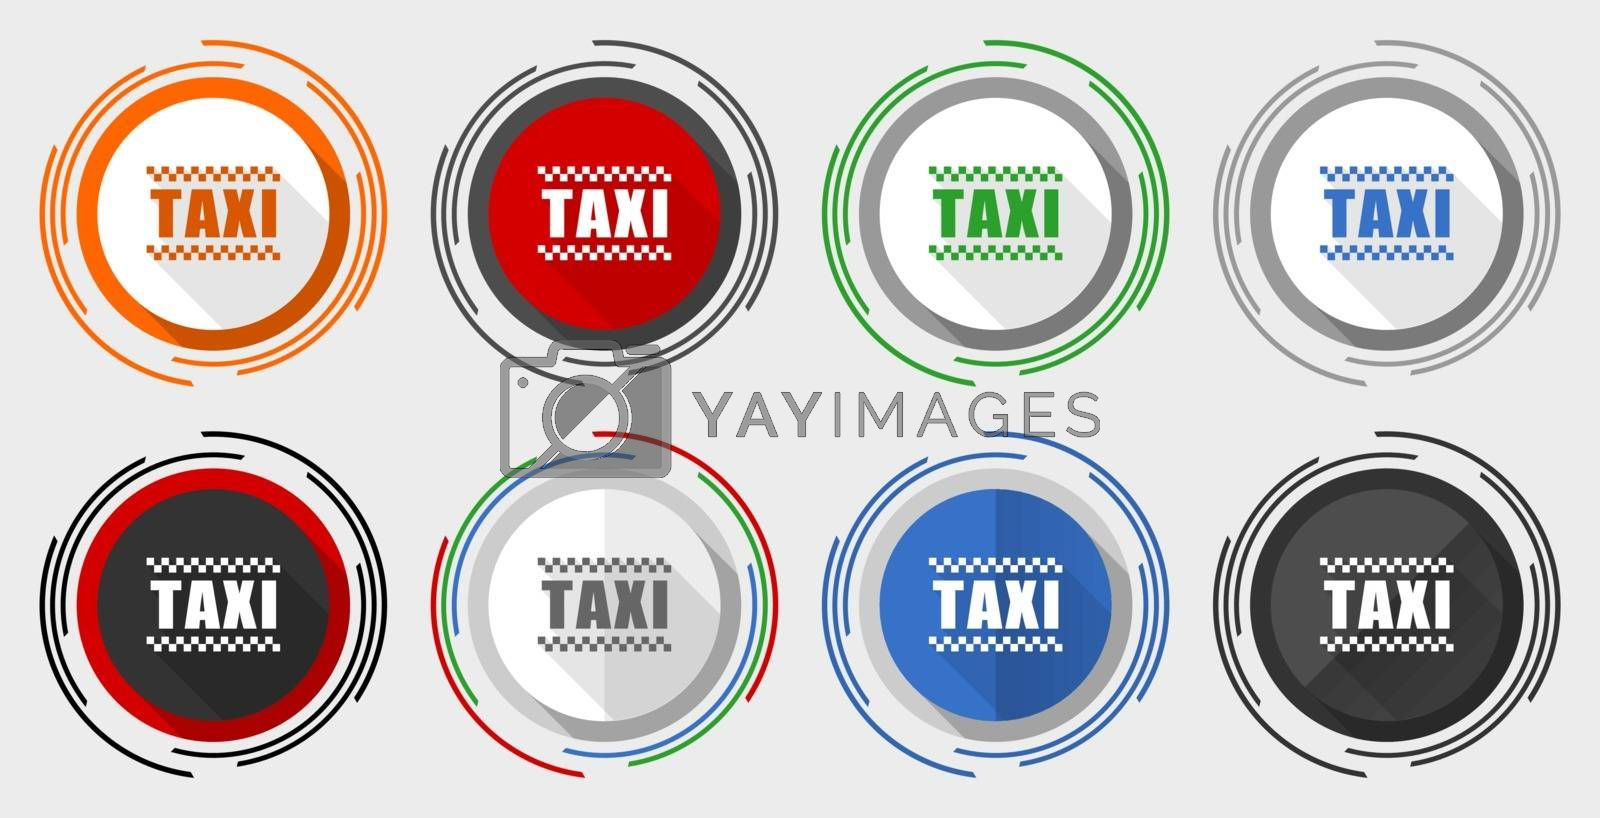 Taxi vector icon set, modern design flat graphic in 8 options for web design and mobile applications